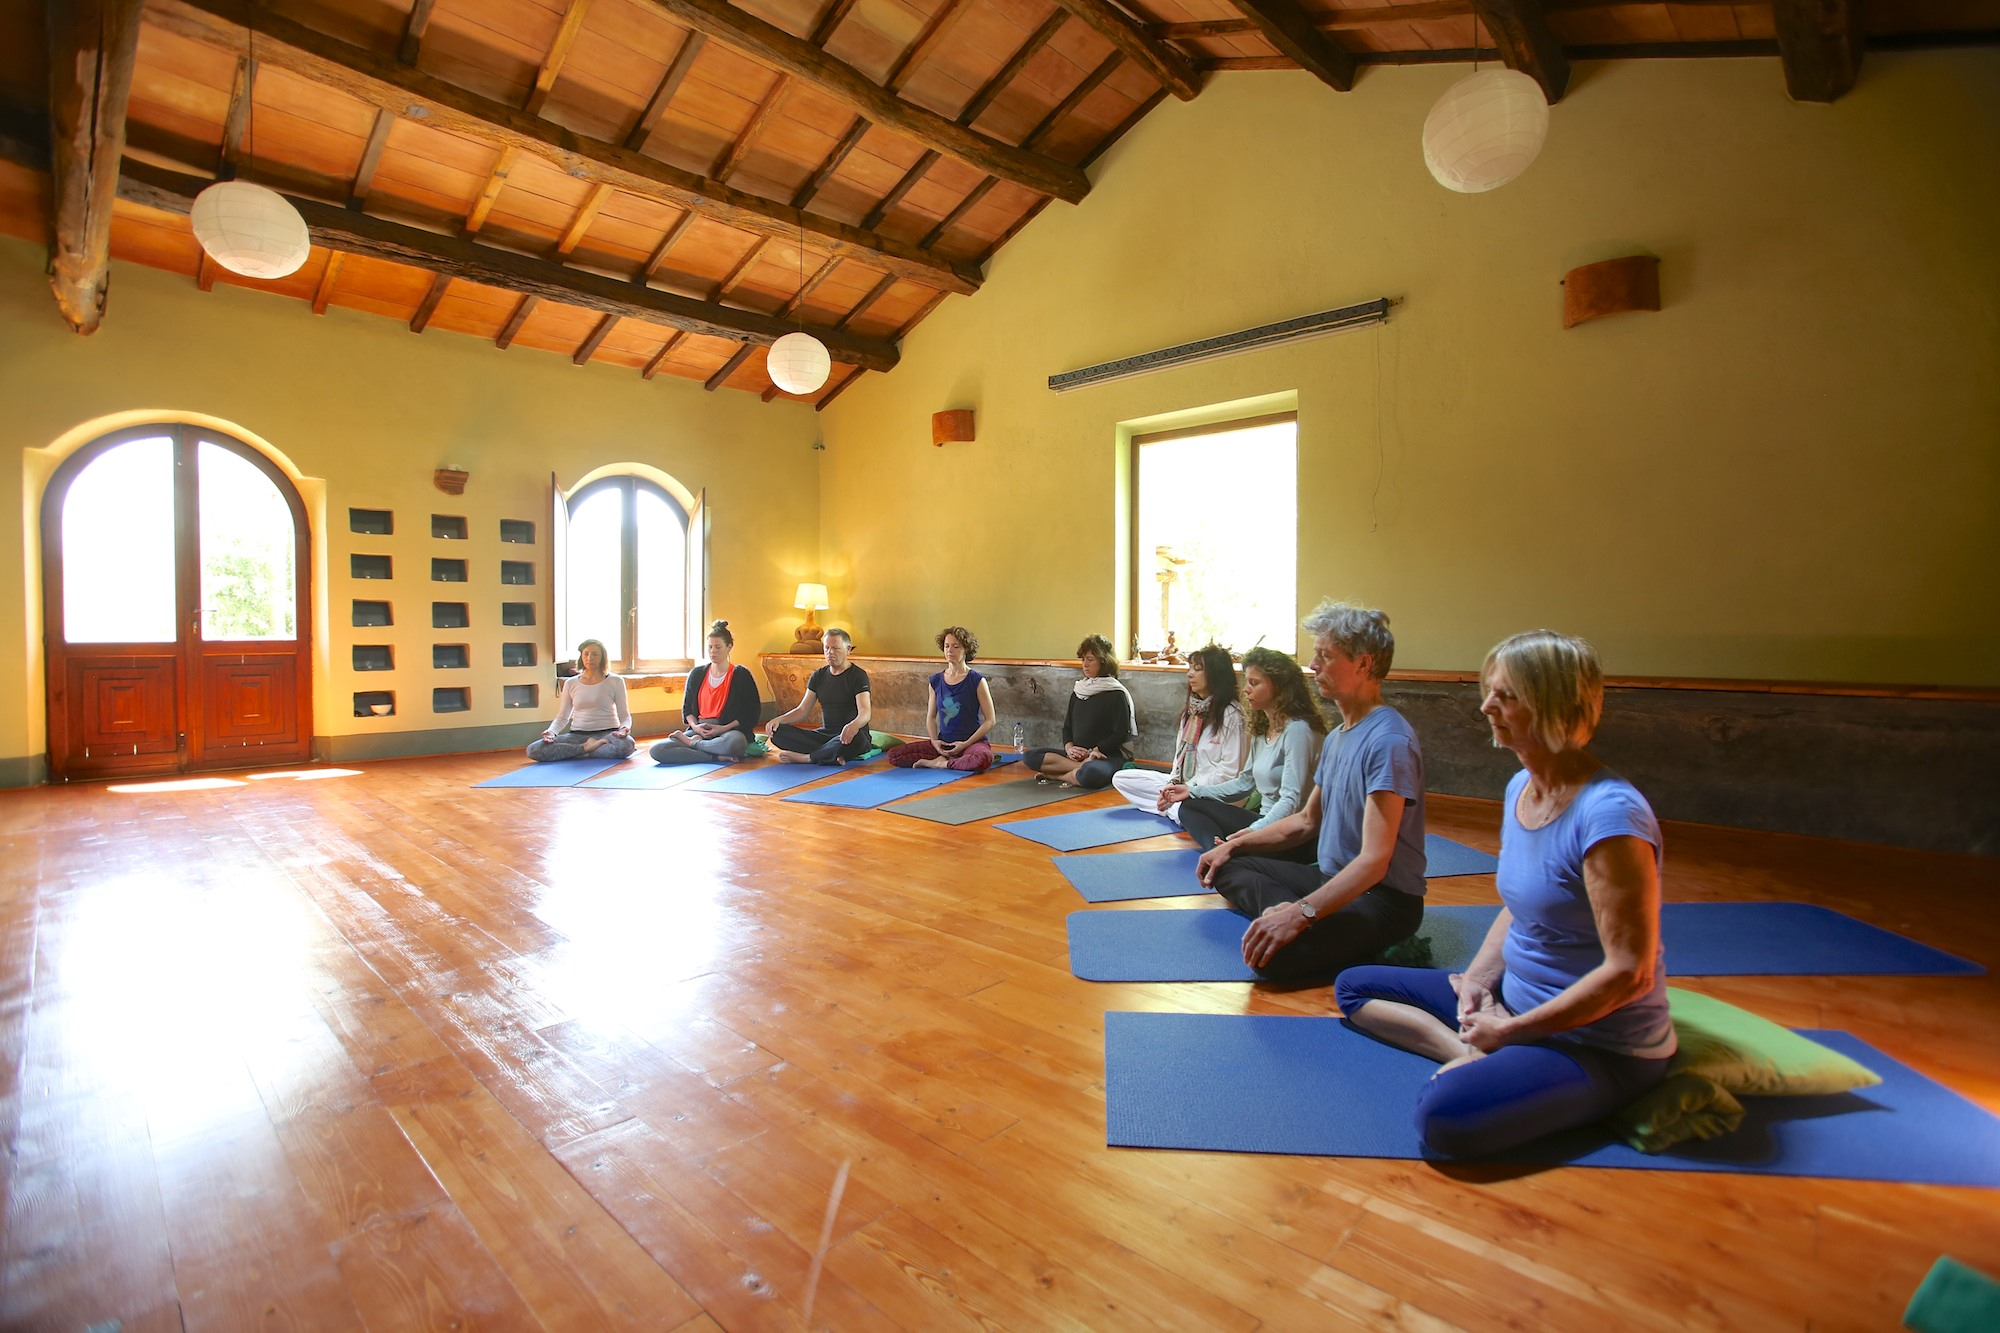 Yoga classes are proposed to the guests